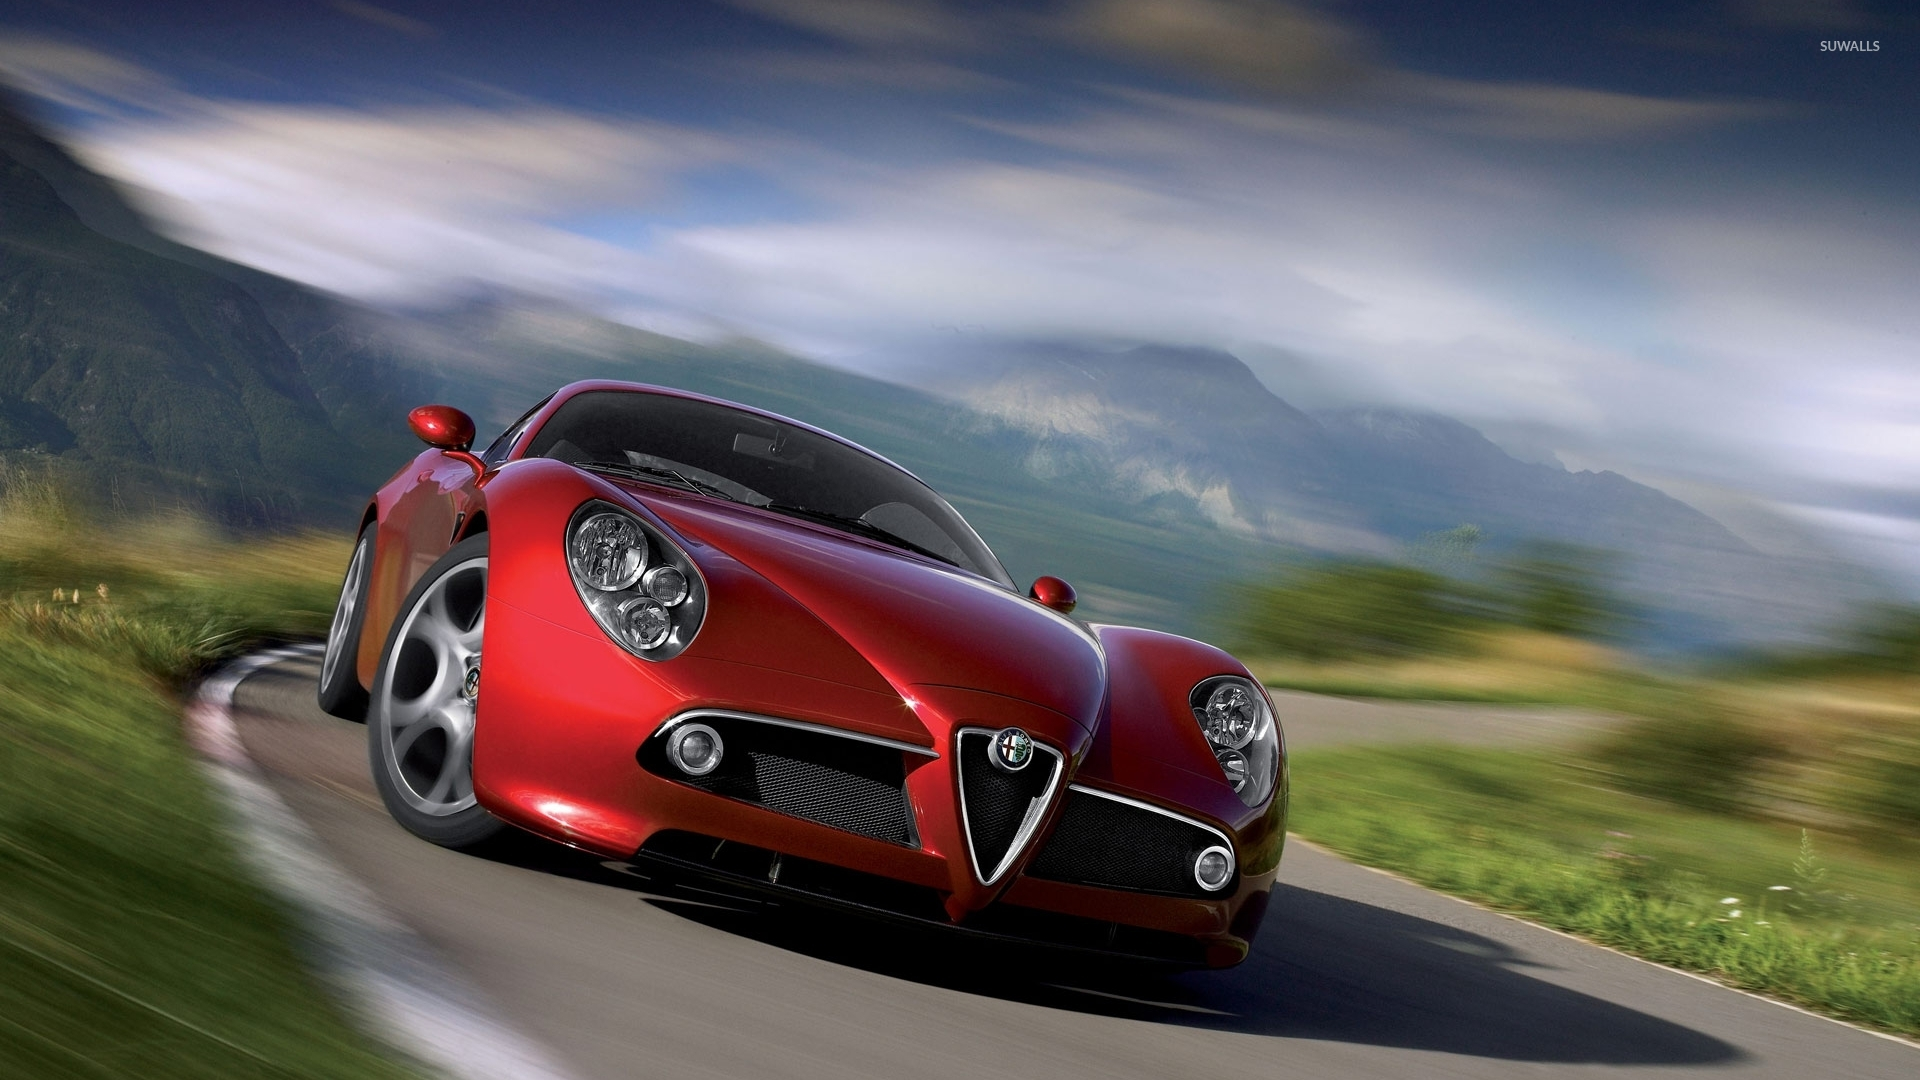 alfa romeo 8c competizione 6 wallpaper car wallpapers